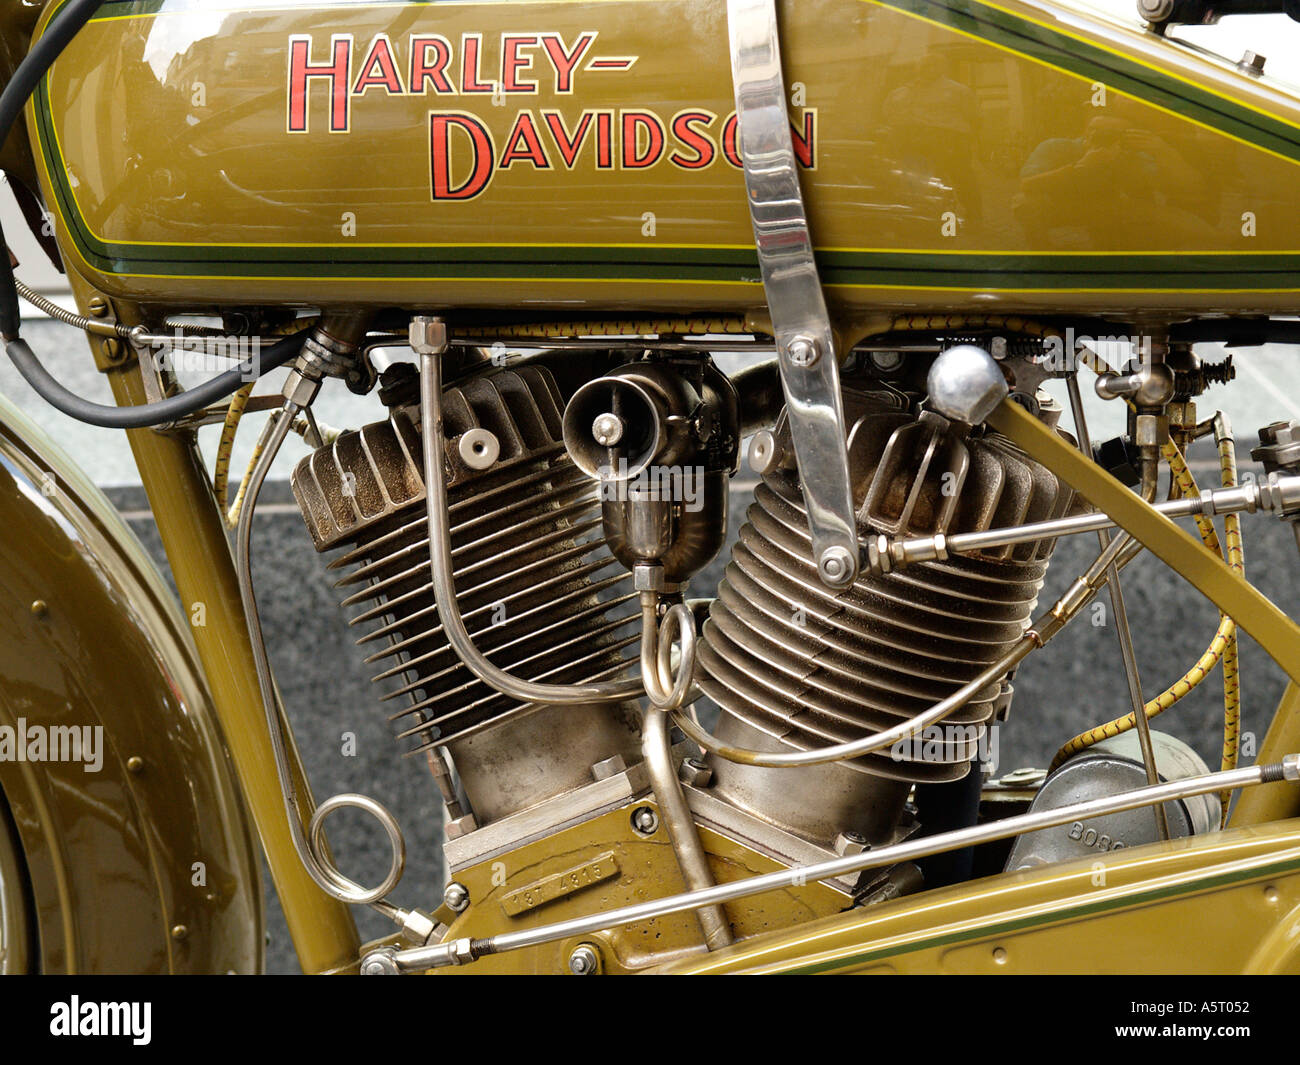 motorcycle engine classic stock photos \u0026 motorcycle engine classicdetail of a very old classic harley davidson motorcycle showing the famous v twin engine layout